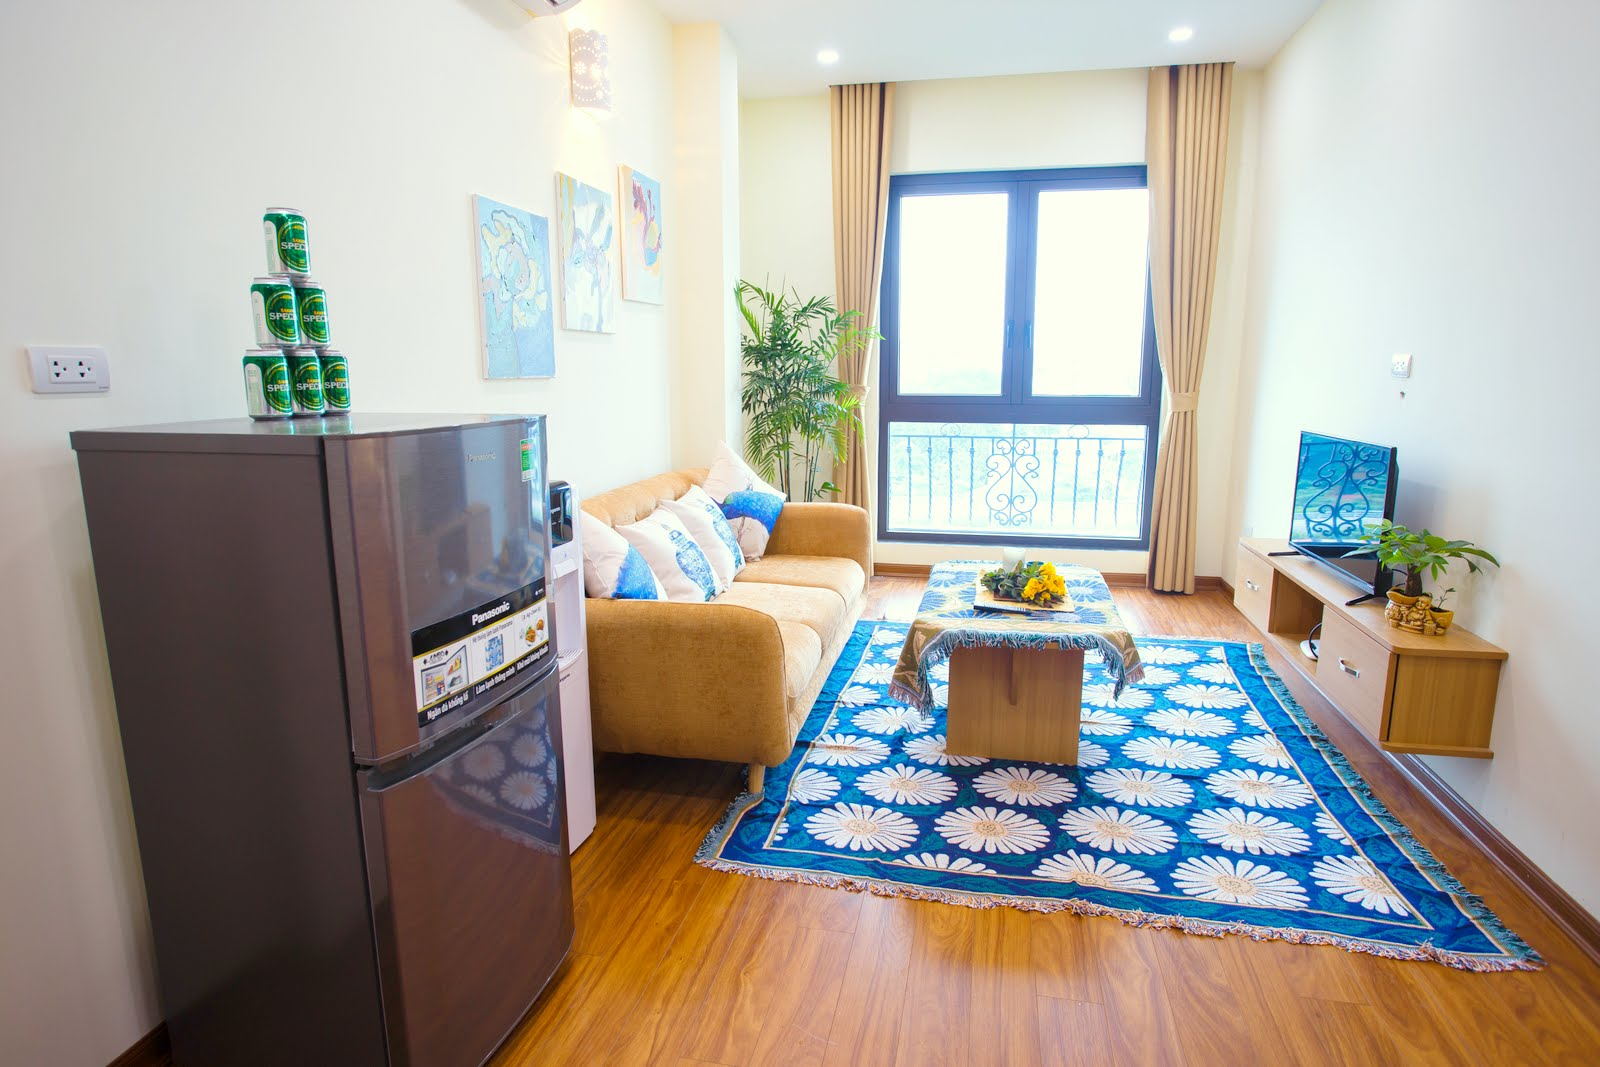 1 Bedroom Serviced Apartment For Rent On Quan Hoa Street, Cau Giay